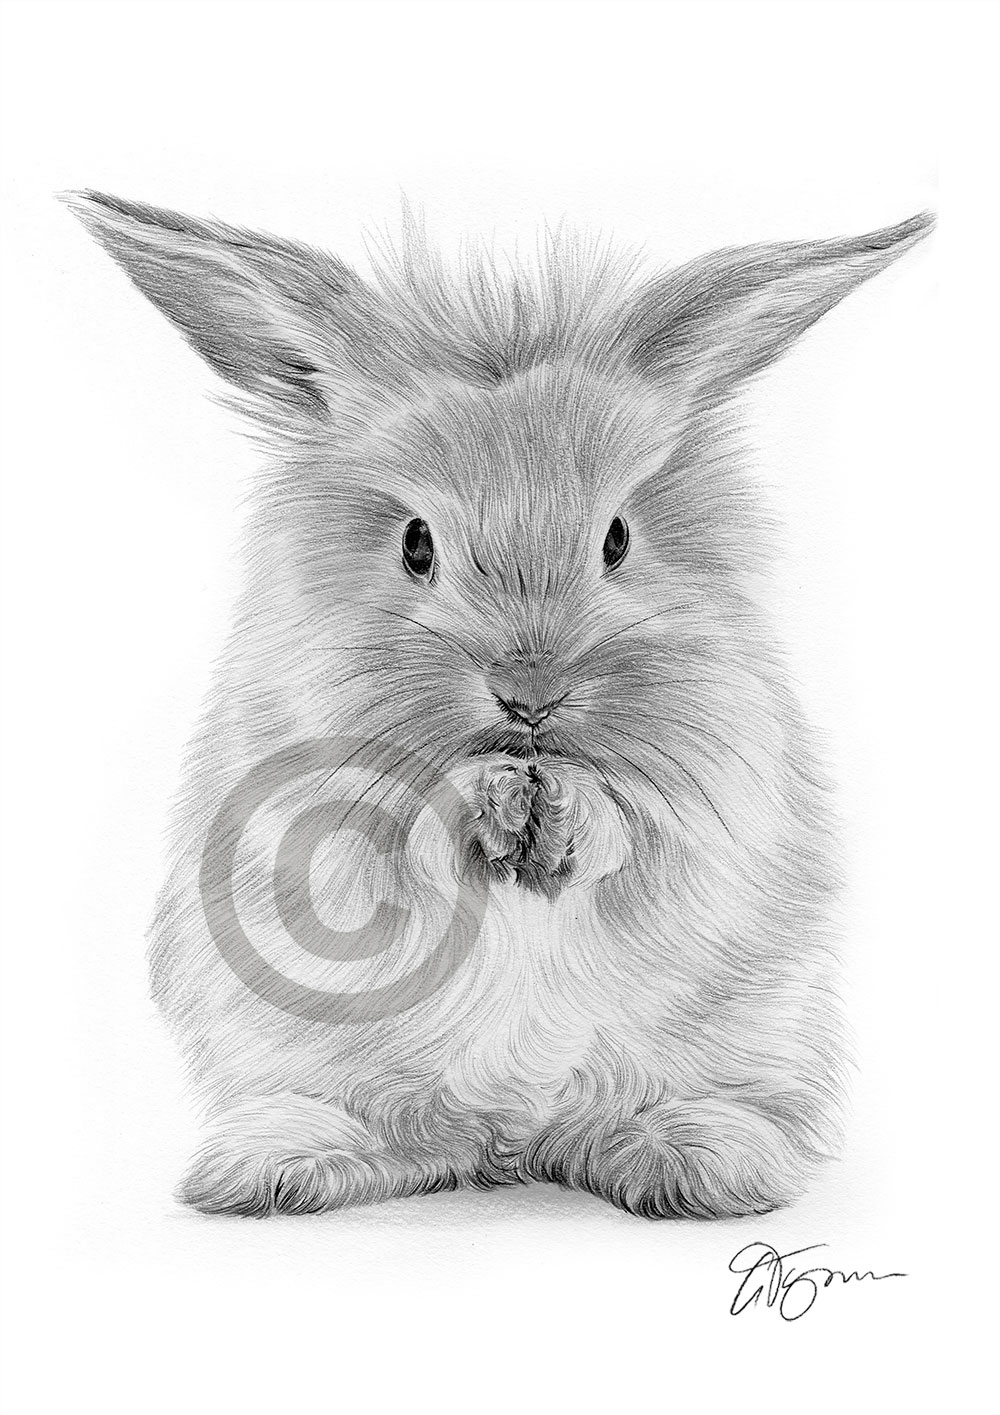 Details About Rabbit Animal Pencil Drawing Artwork Print A4 Only Signed By Artist Gtymon